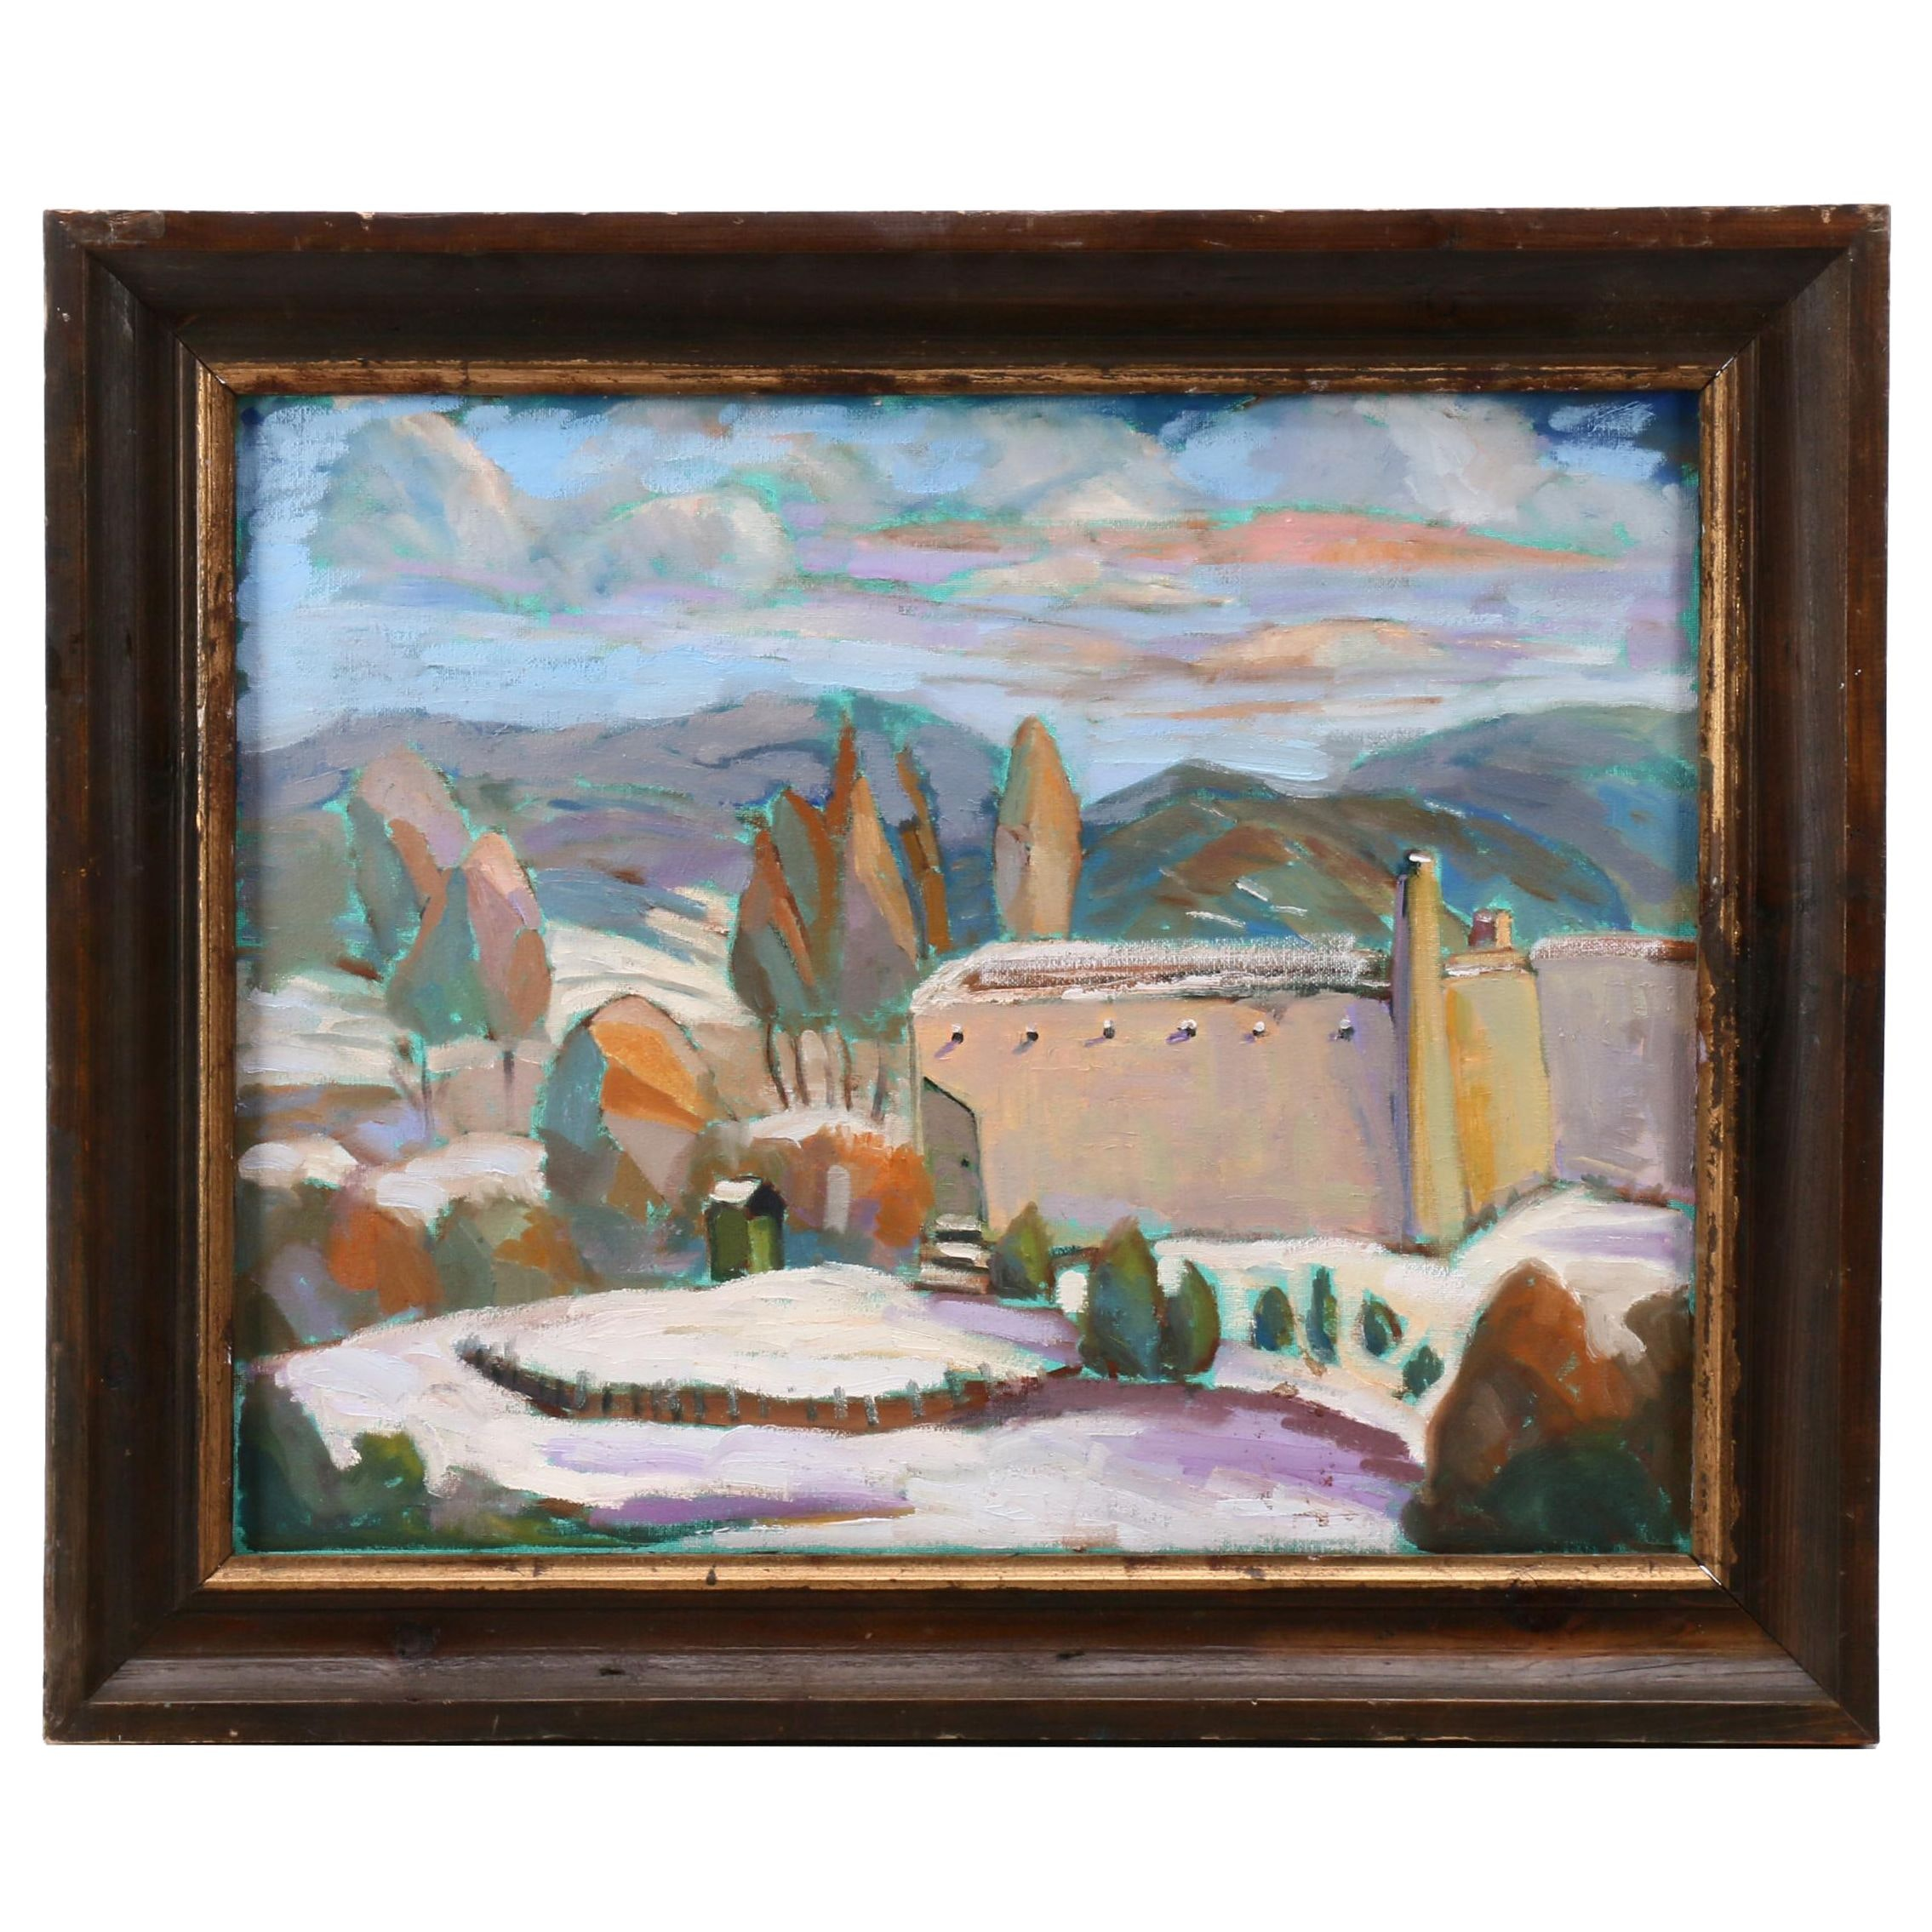 Oil Painting of Stylized Fort in Landscape